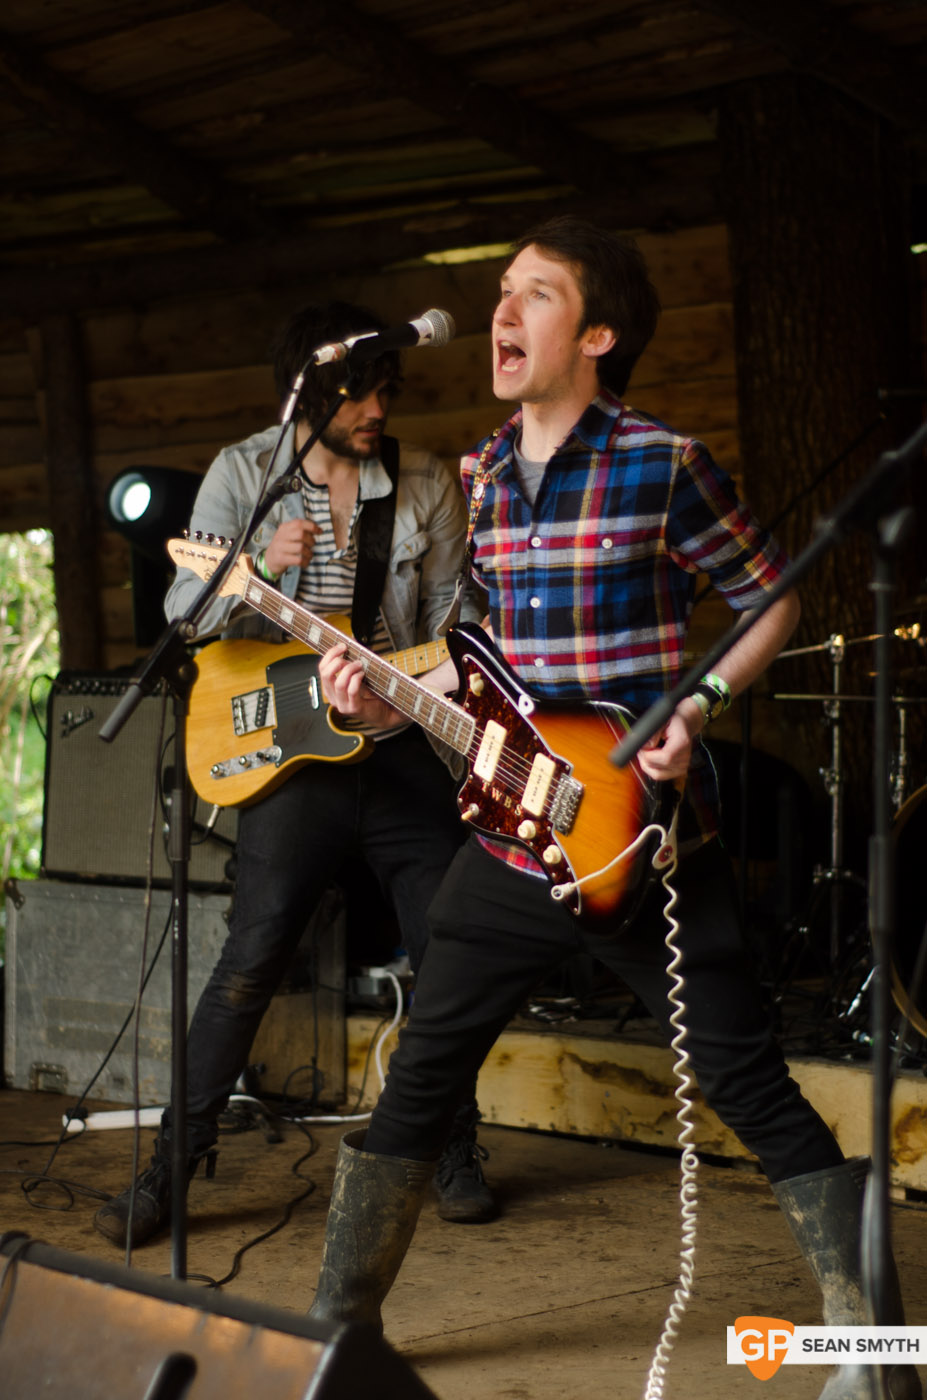 the-wood-burning-savages-sunday-at-vantastival-by-sean-smyth-1-5-14-20-of-49